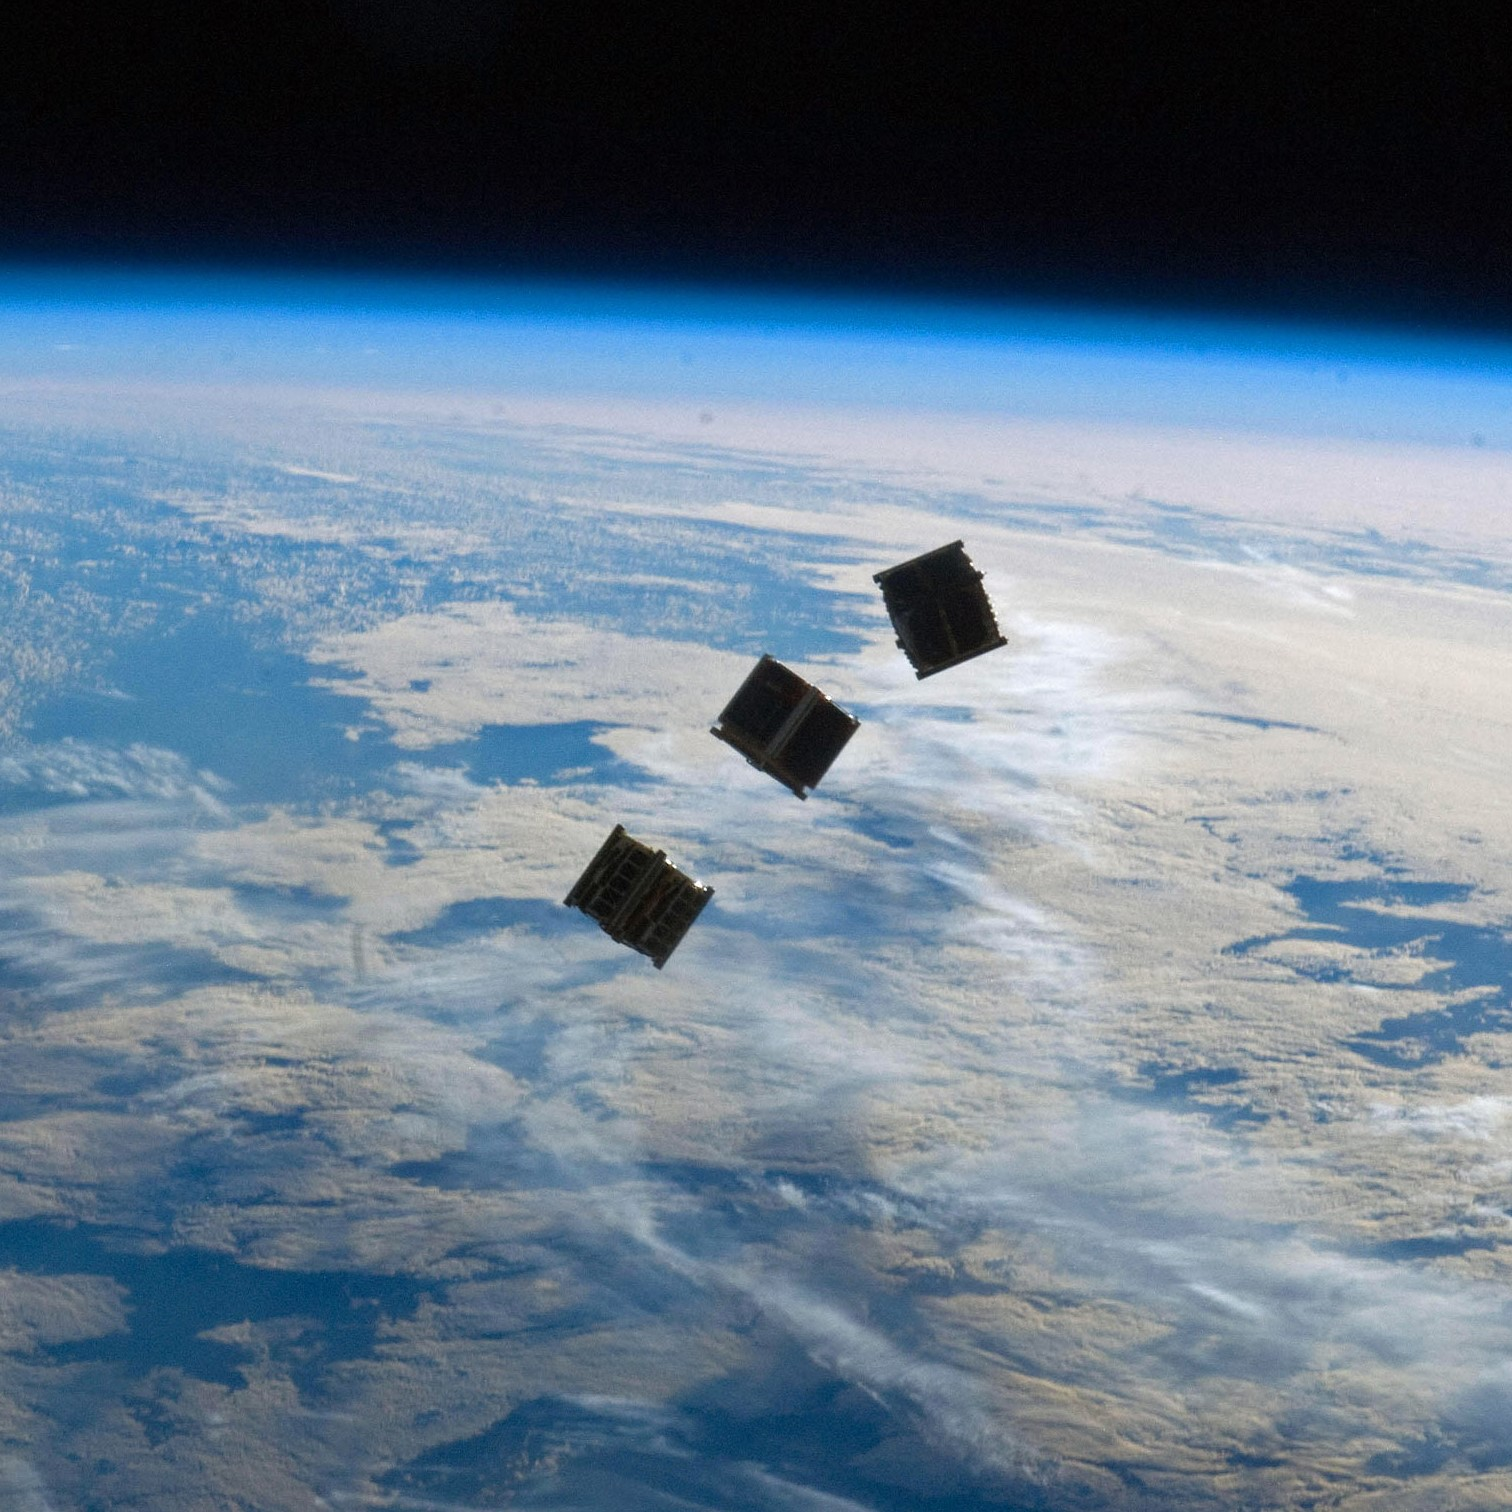 three cubesats above the Earth